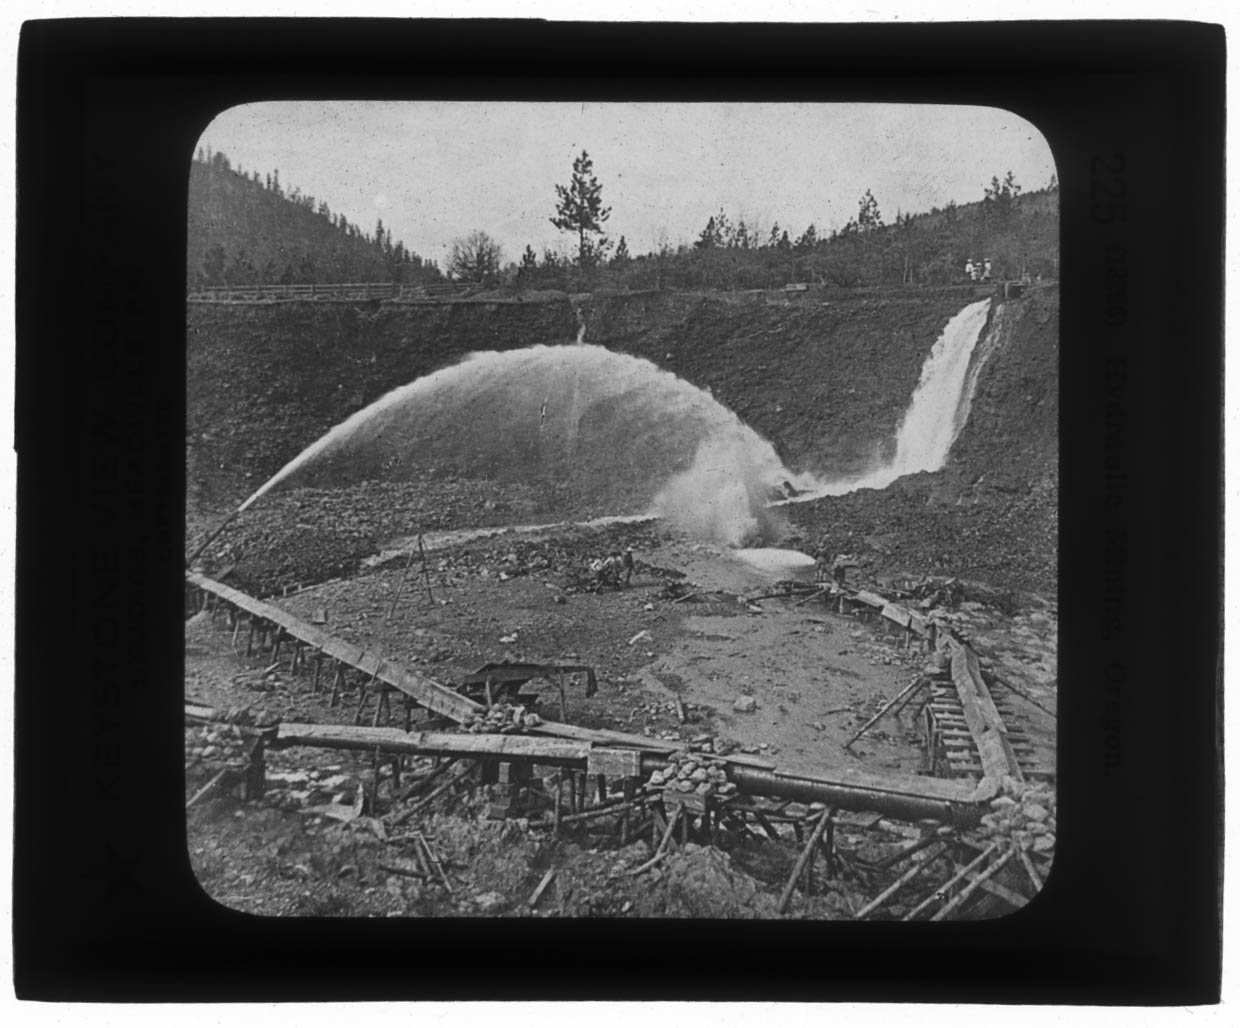 Keystone Lantern Slide View Hydraulic mining of gold in Oregon